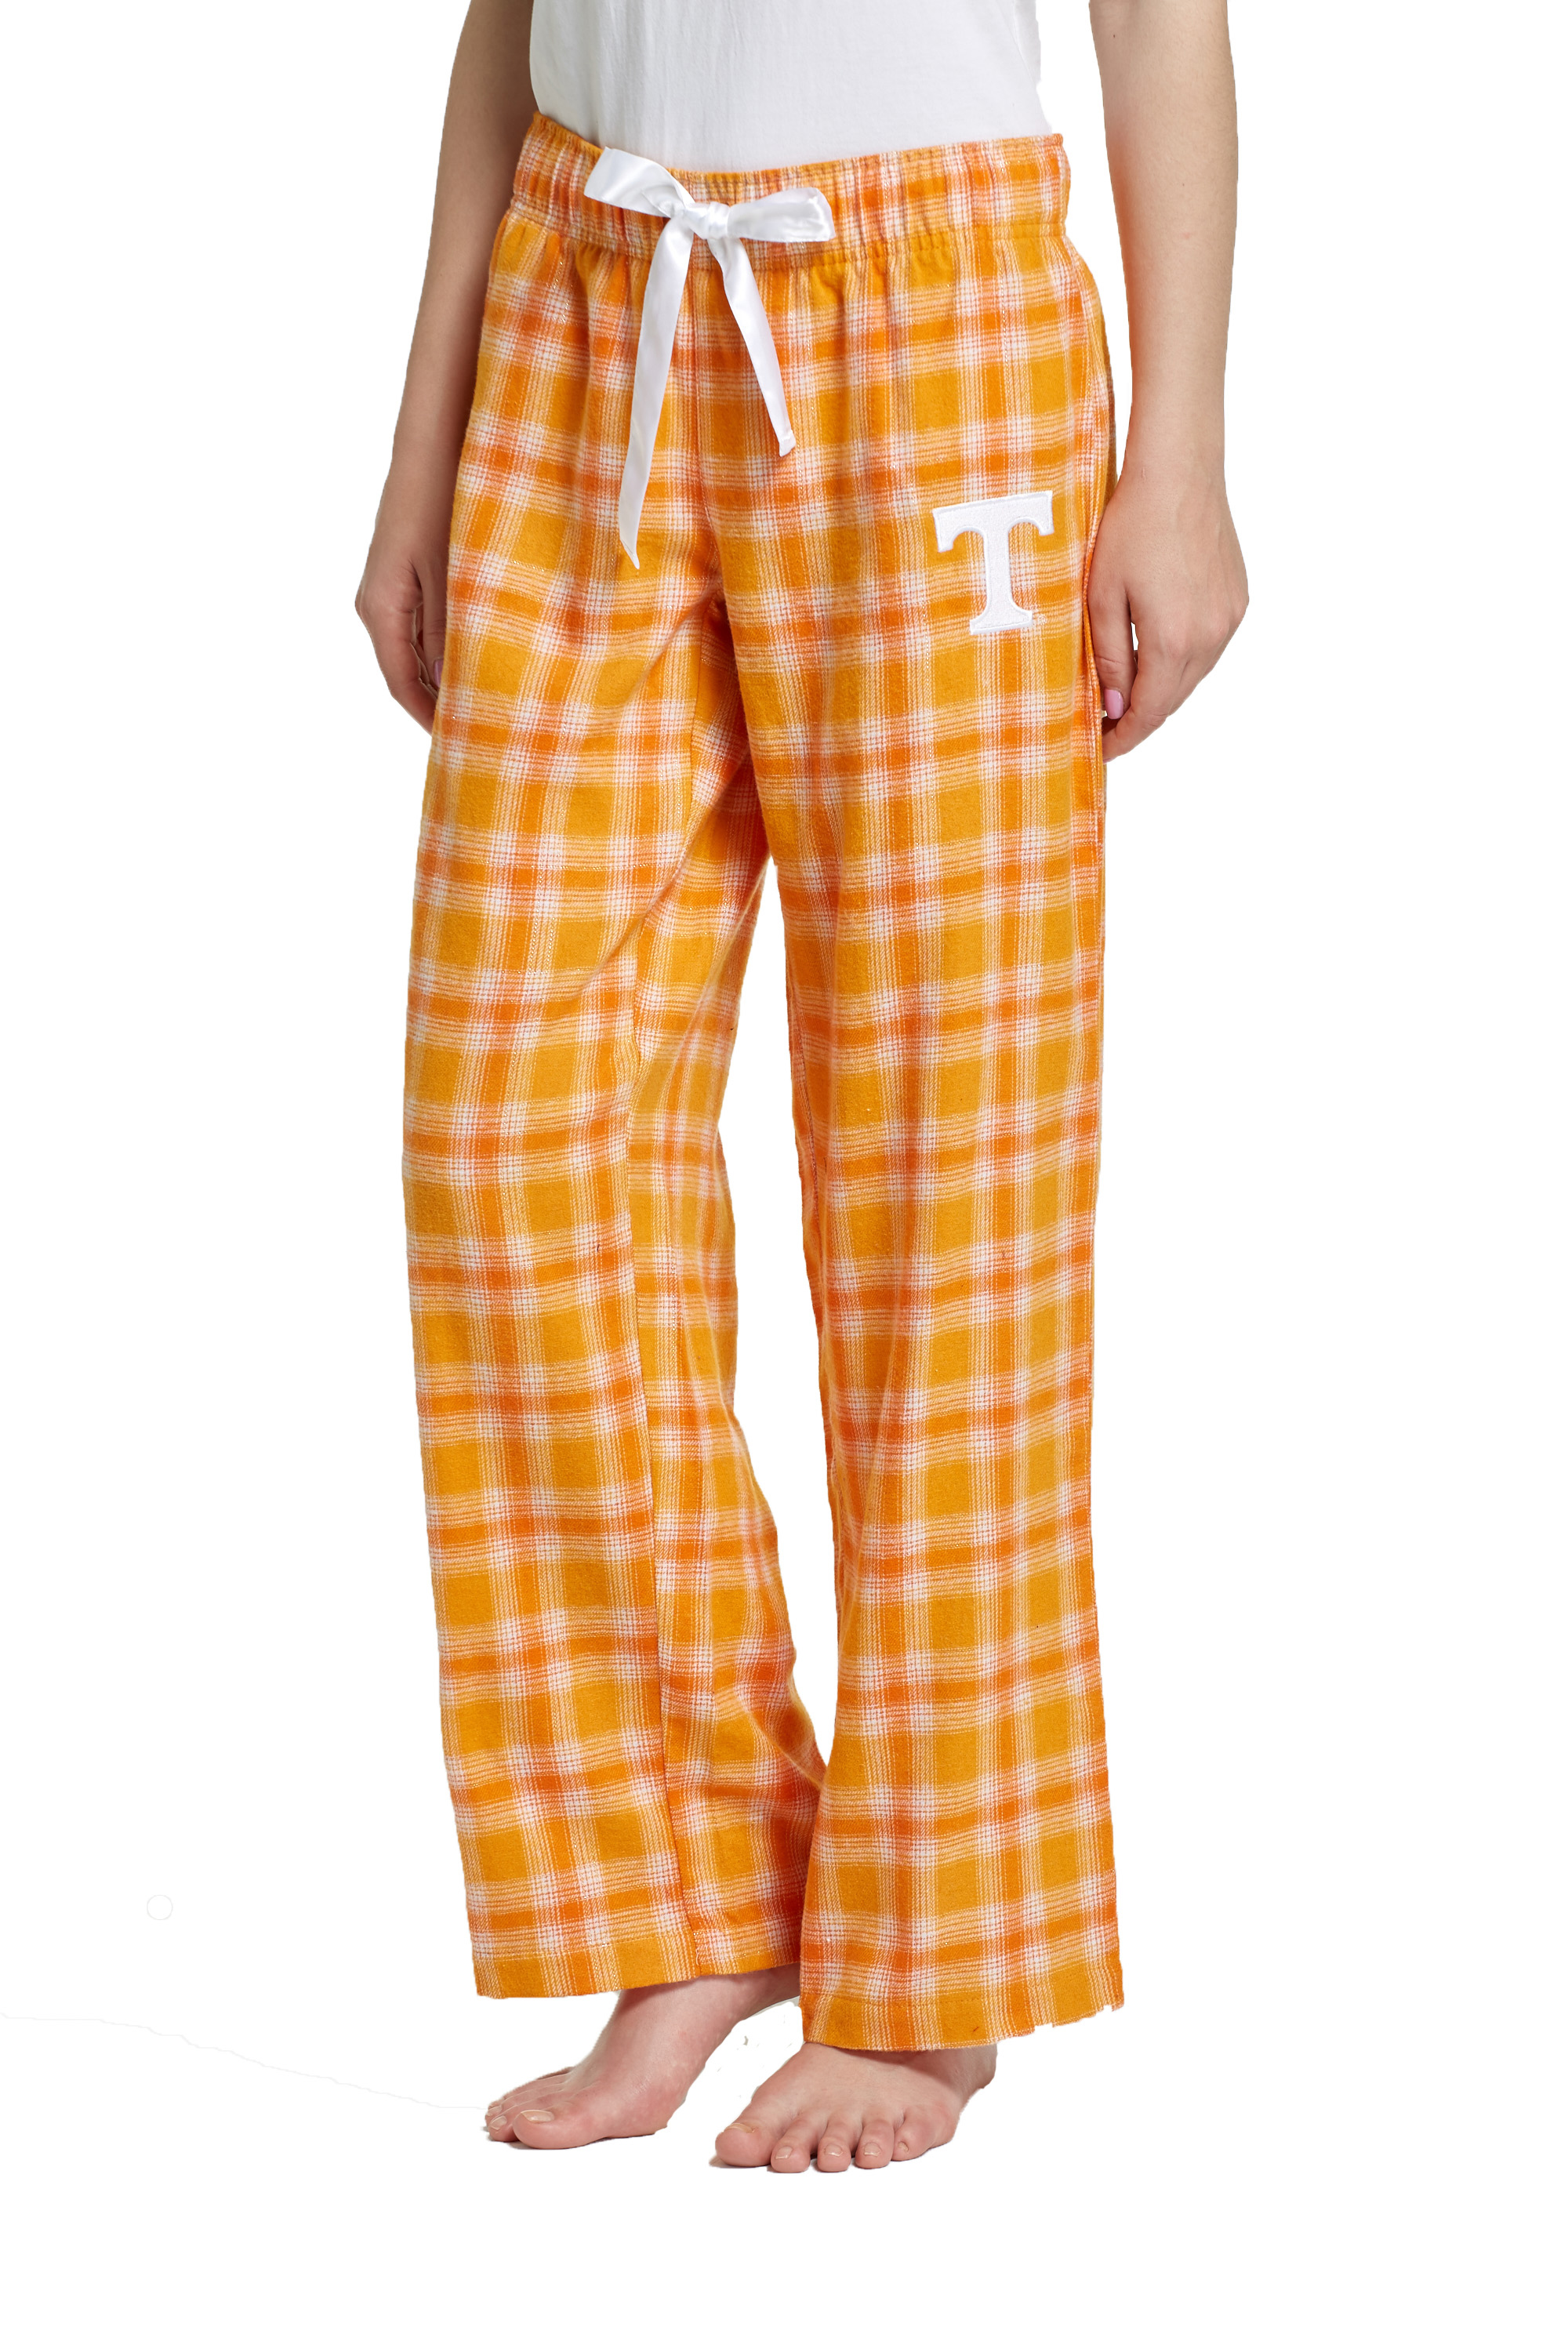 NCAA Tennessee Volunteers Tenacity Ladies' Flannel Pant by